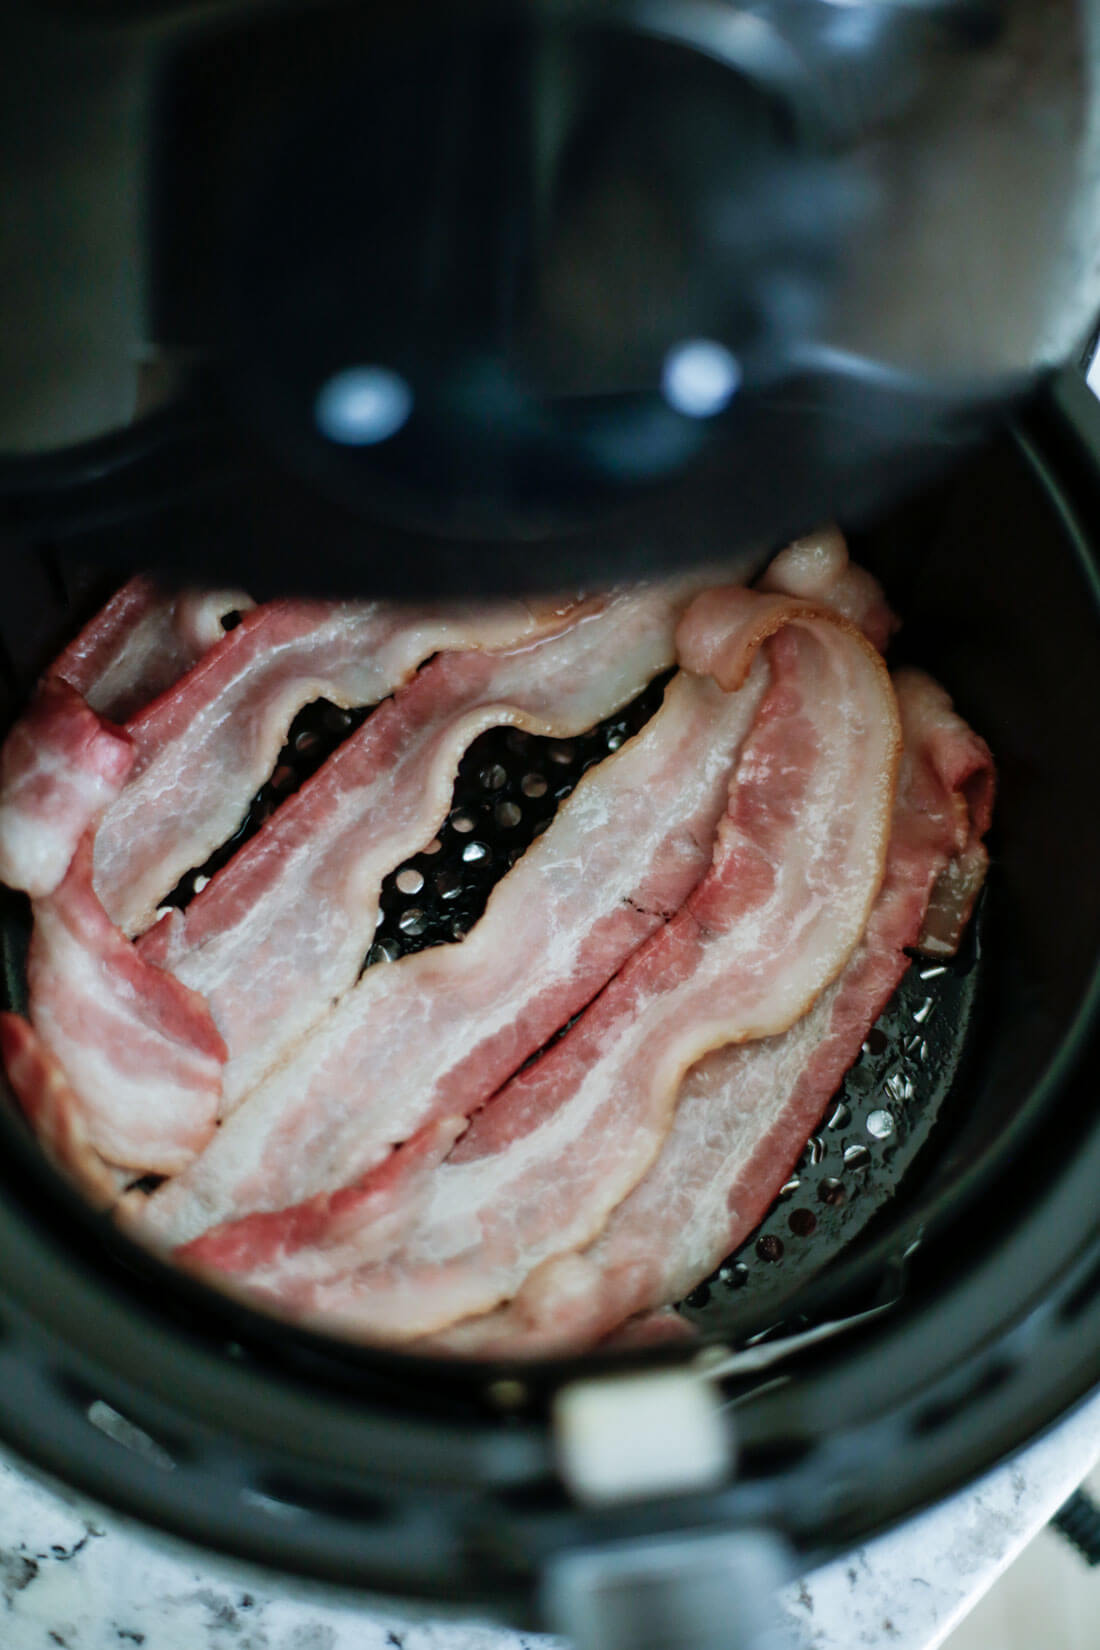 Half way through cooking air fryer bacon